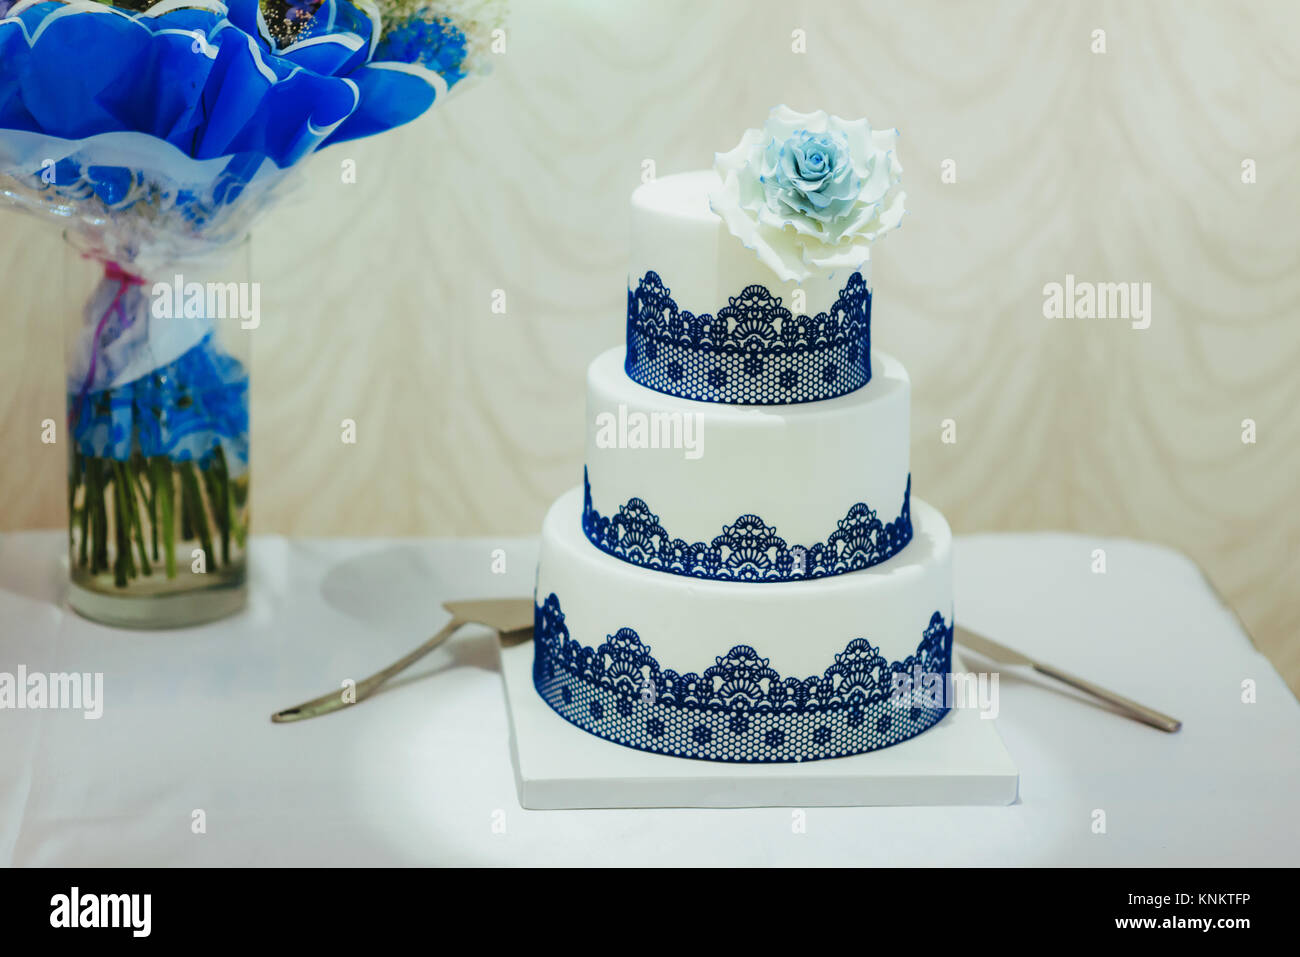 Blue wedding cake decorated with white flowers closeup of blue and blue wedding cake decorated with white flowers closeup of blue and white wedding cake at reception izmirmasajfo Images